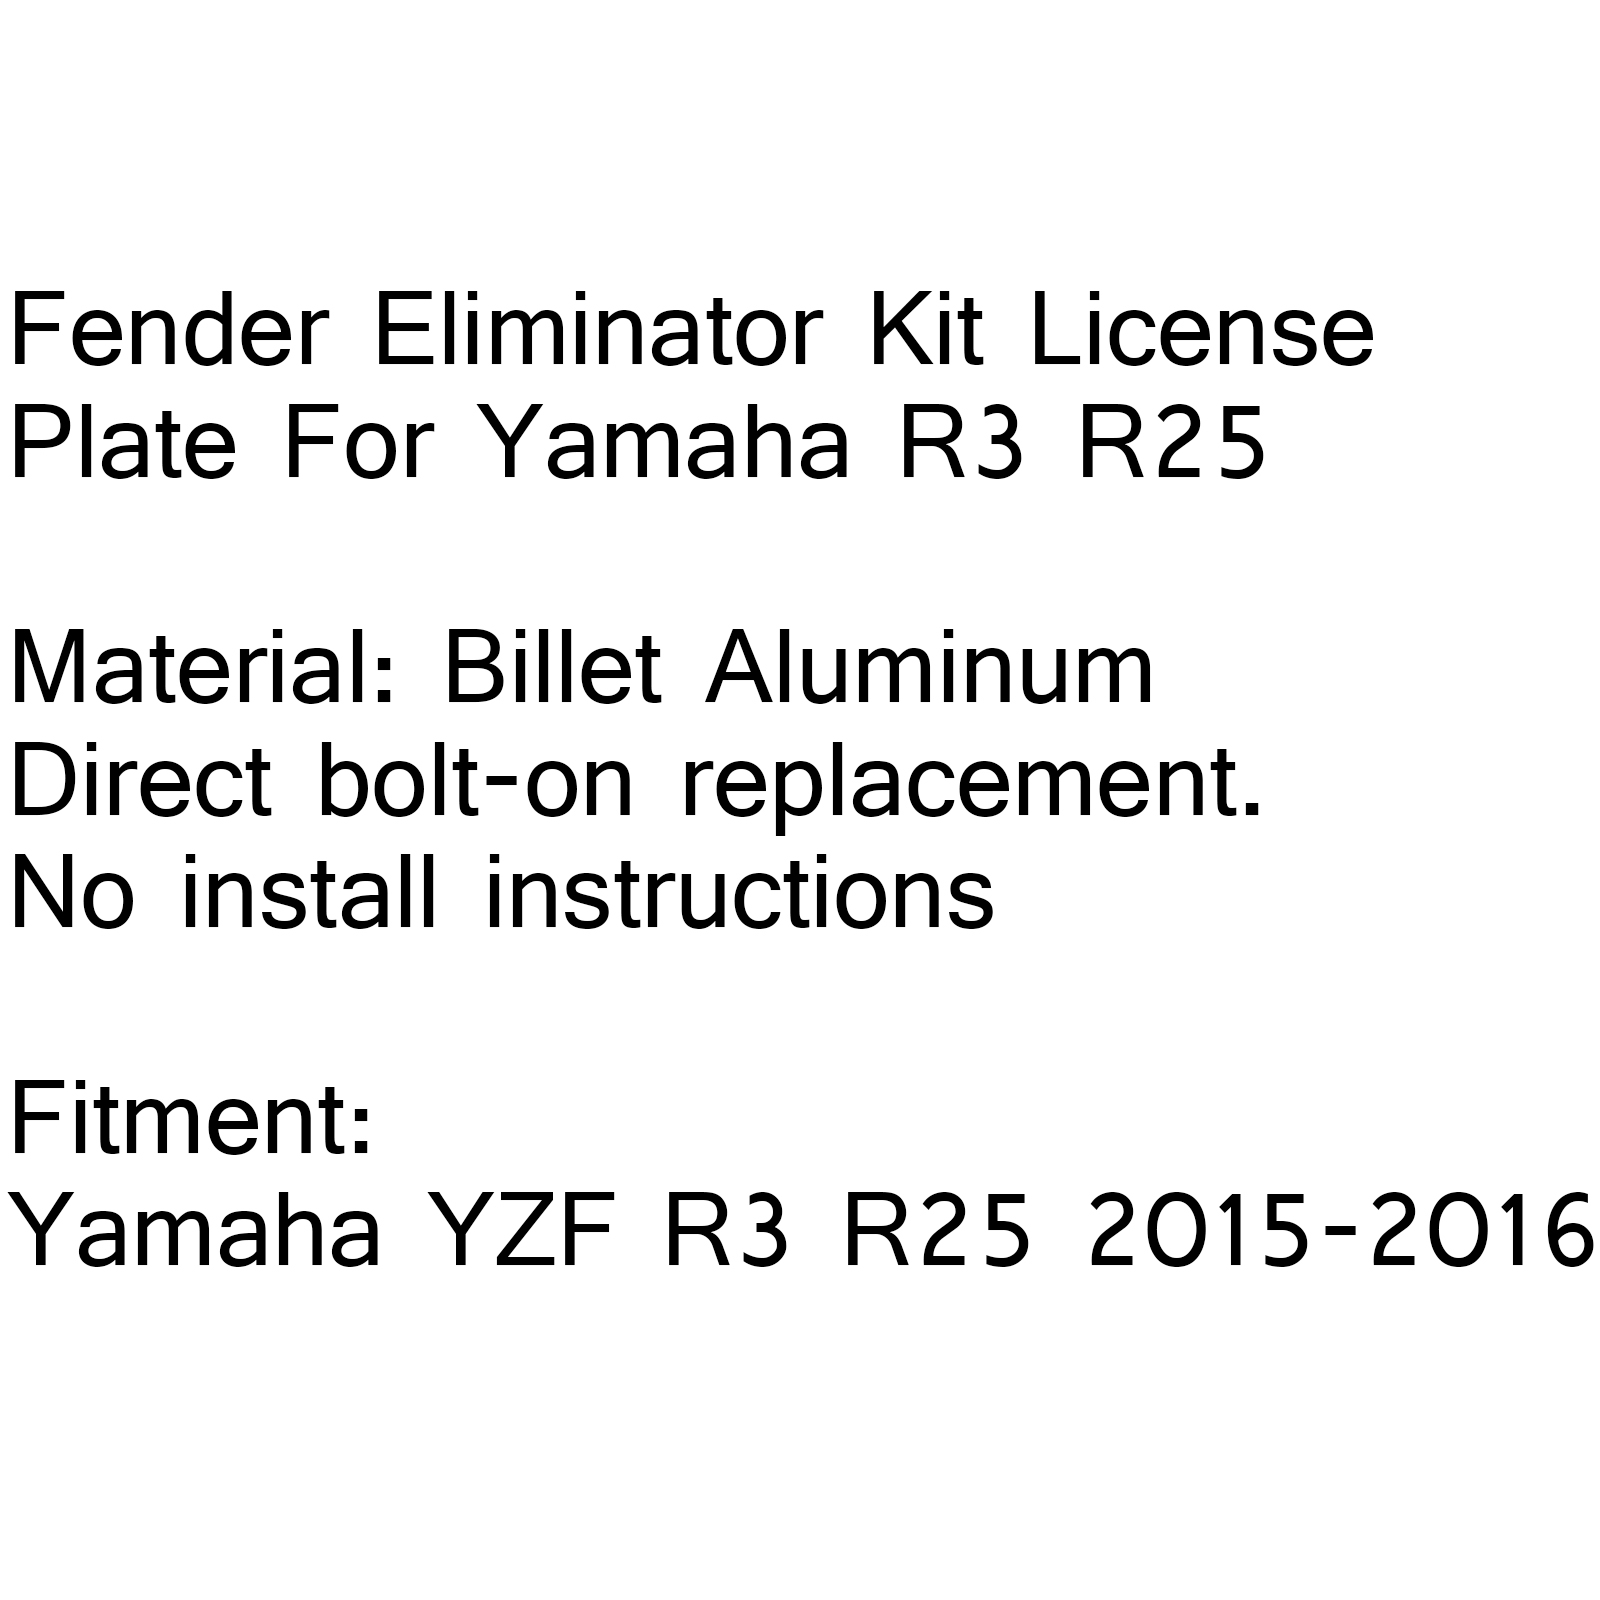 New Fender Eliminator Kit License Plate For Yamaha YZF R3